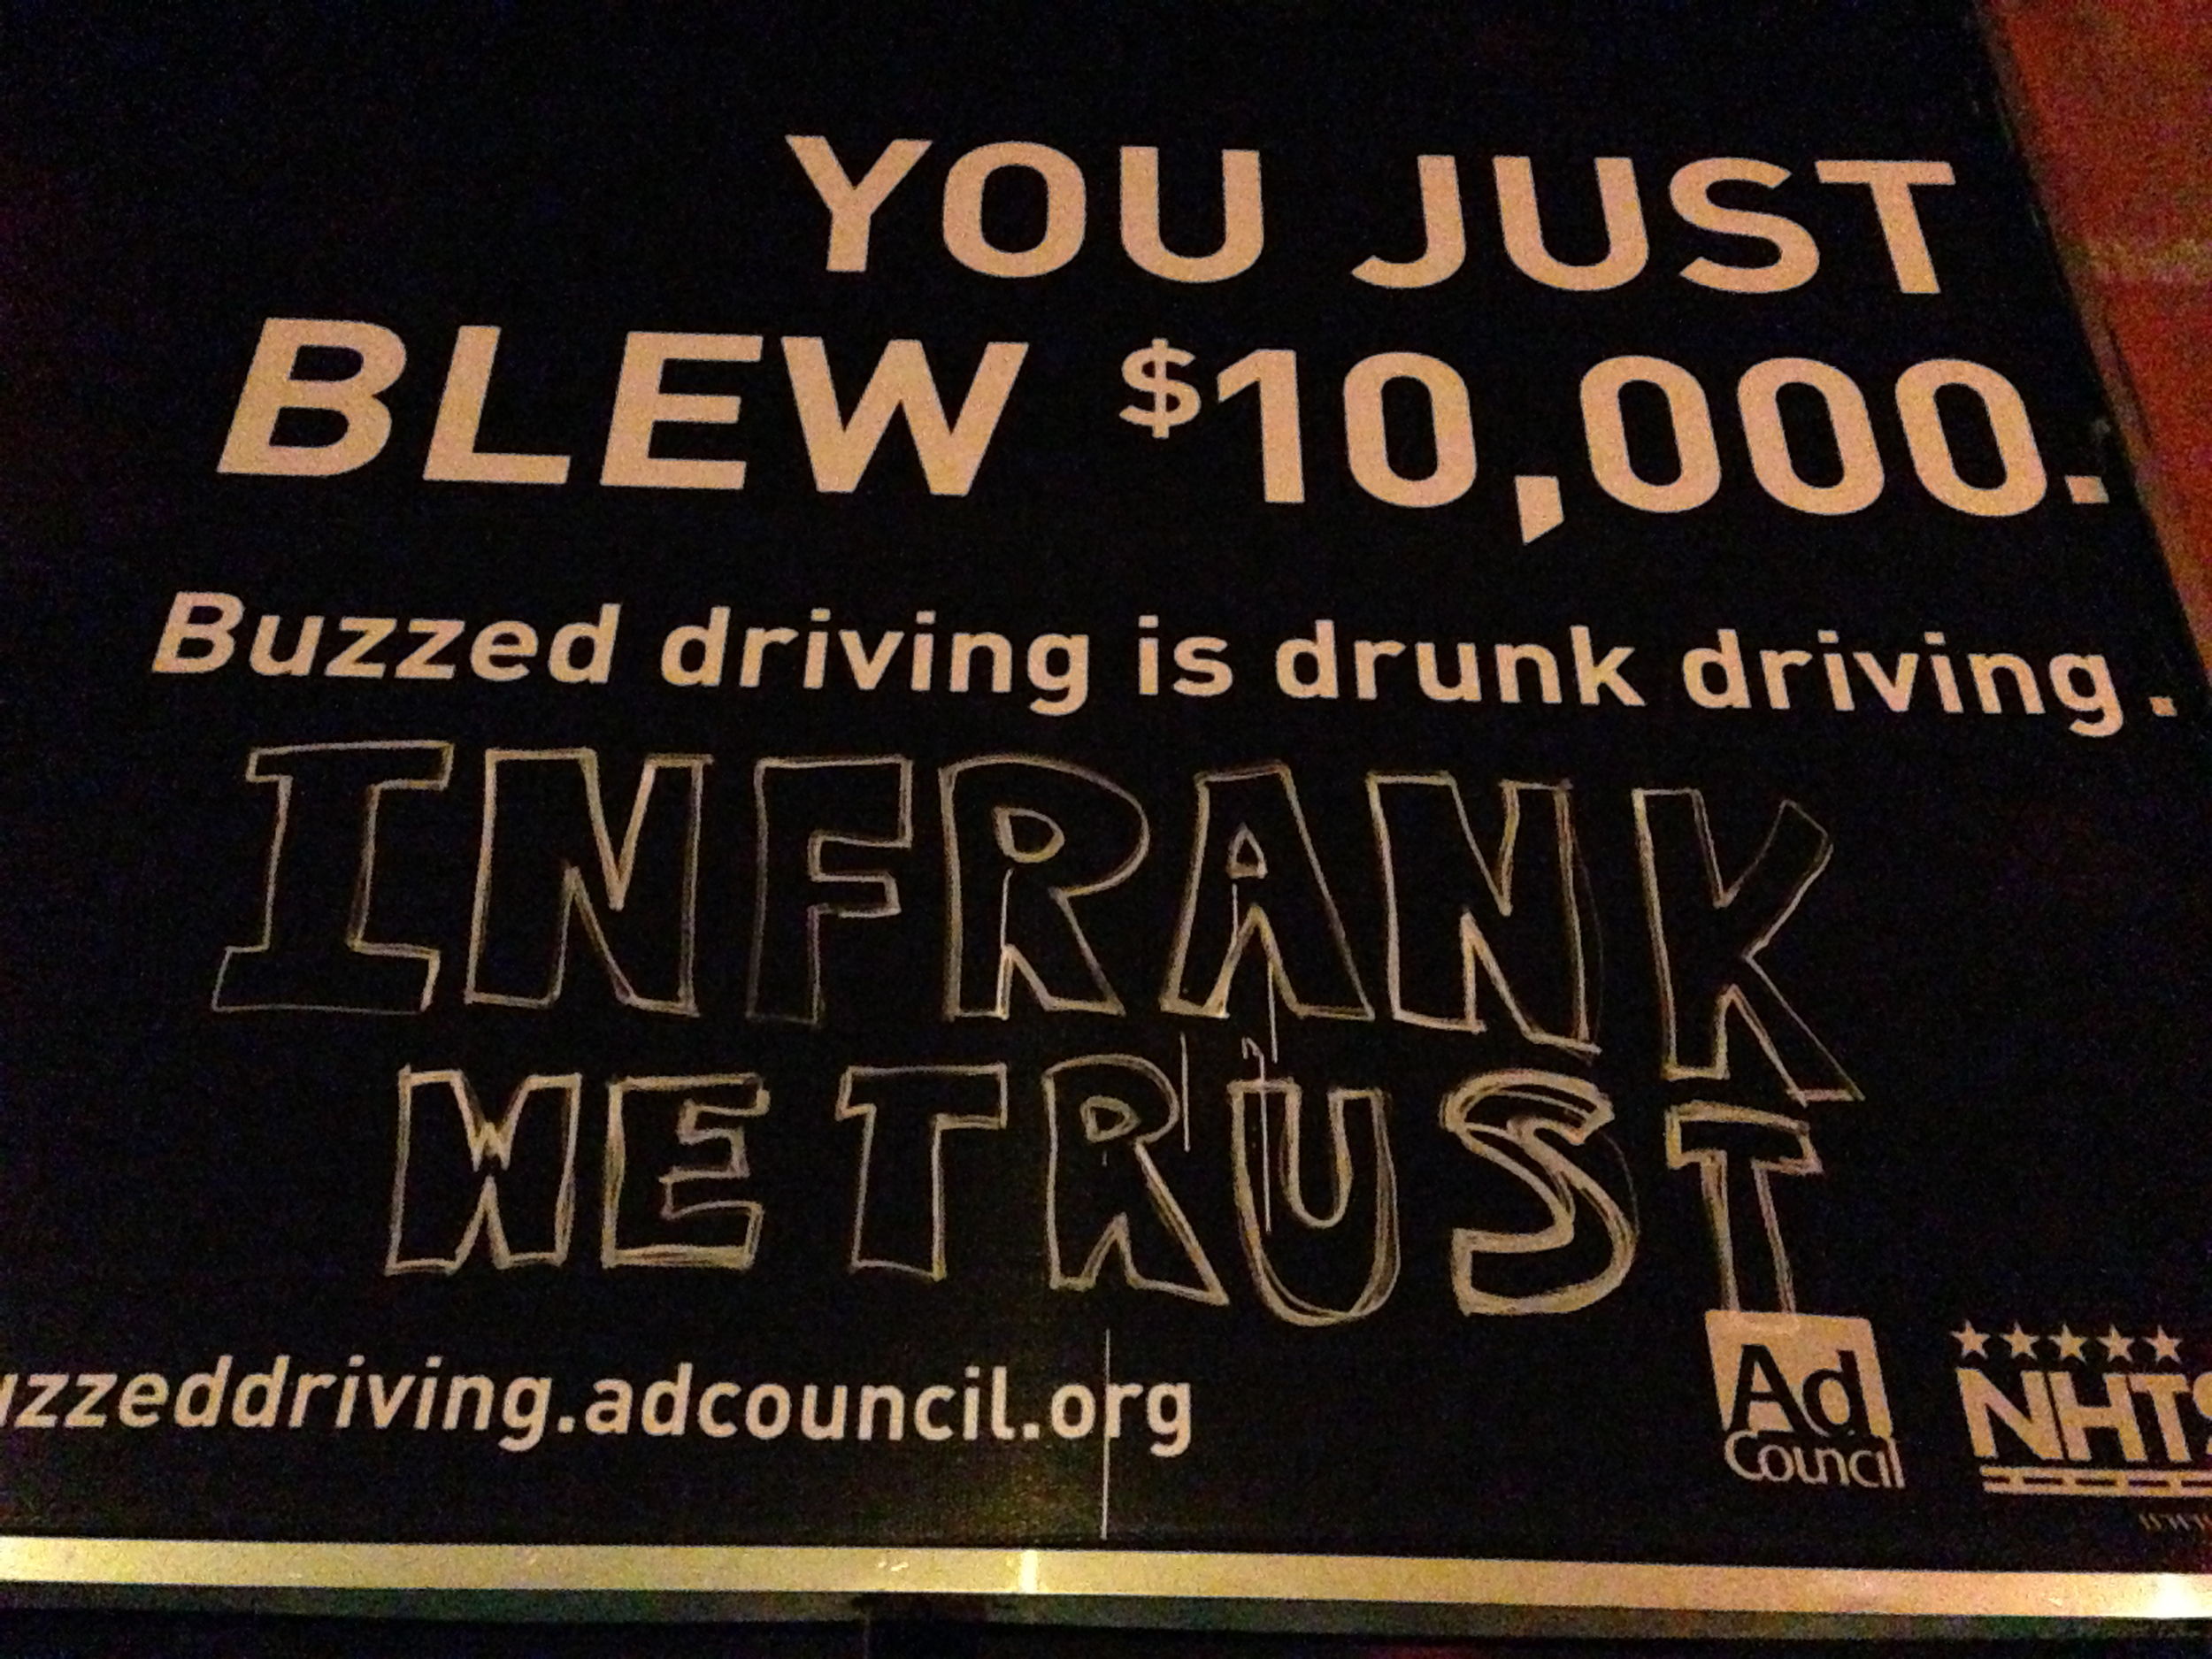 you just blew 10,000 in frank we trust billboard close up.jpg